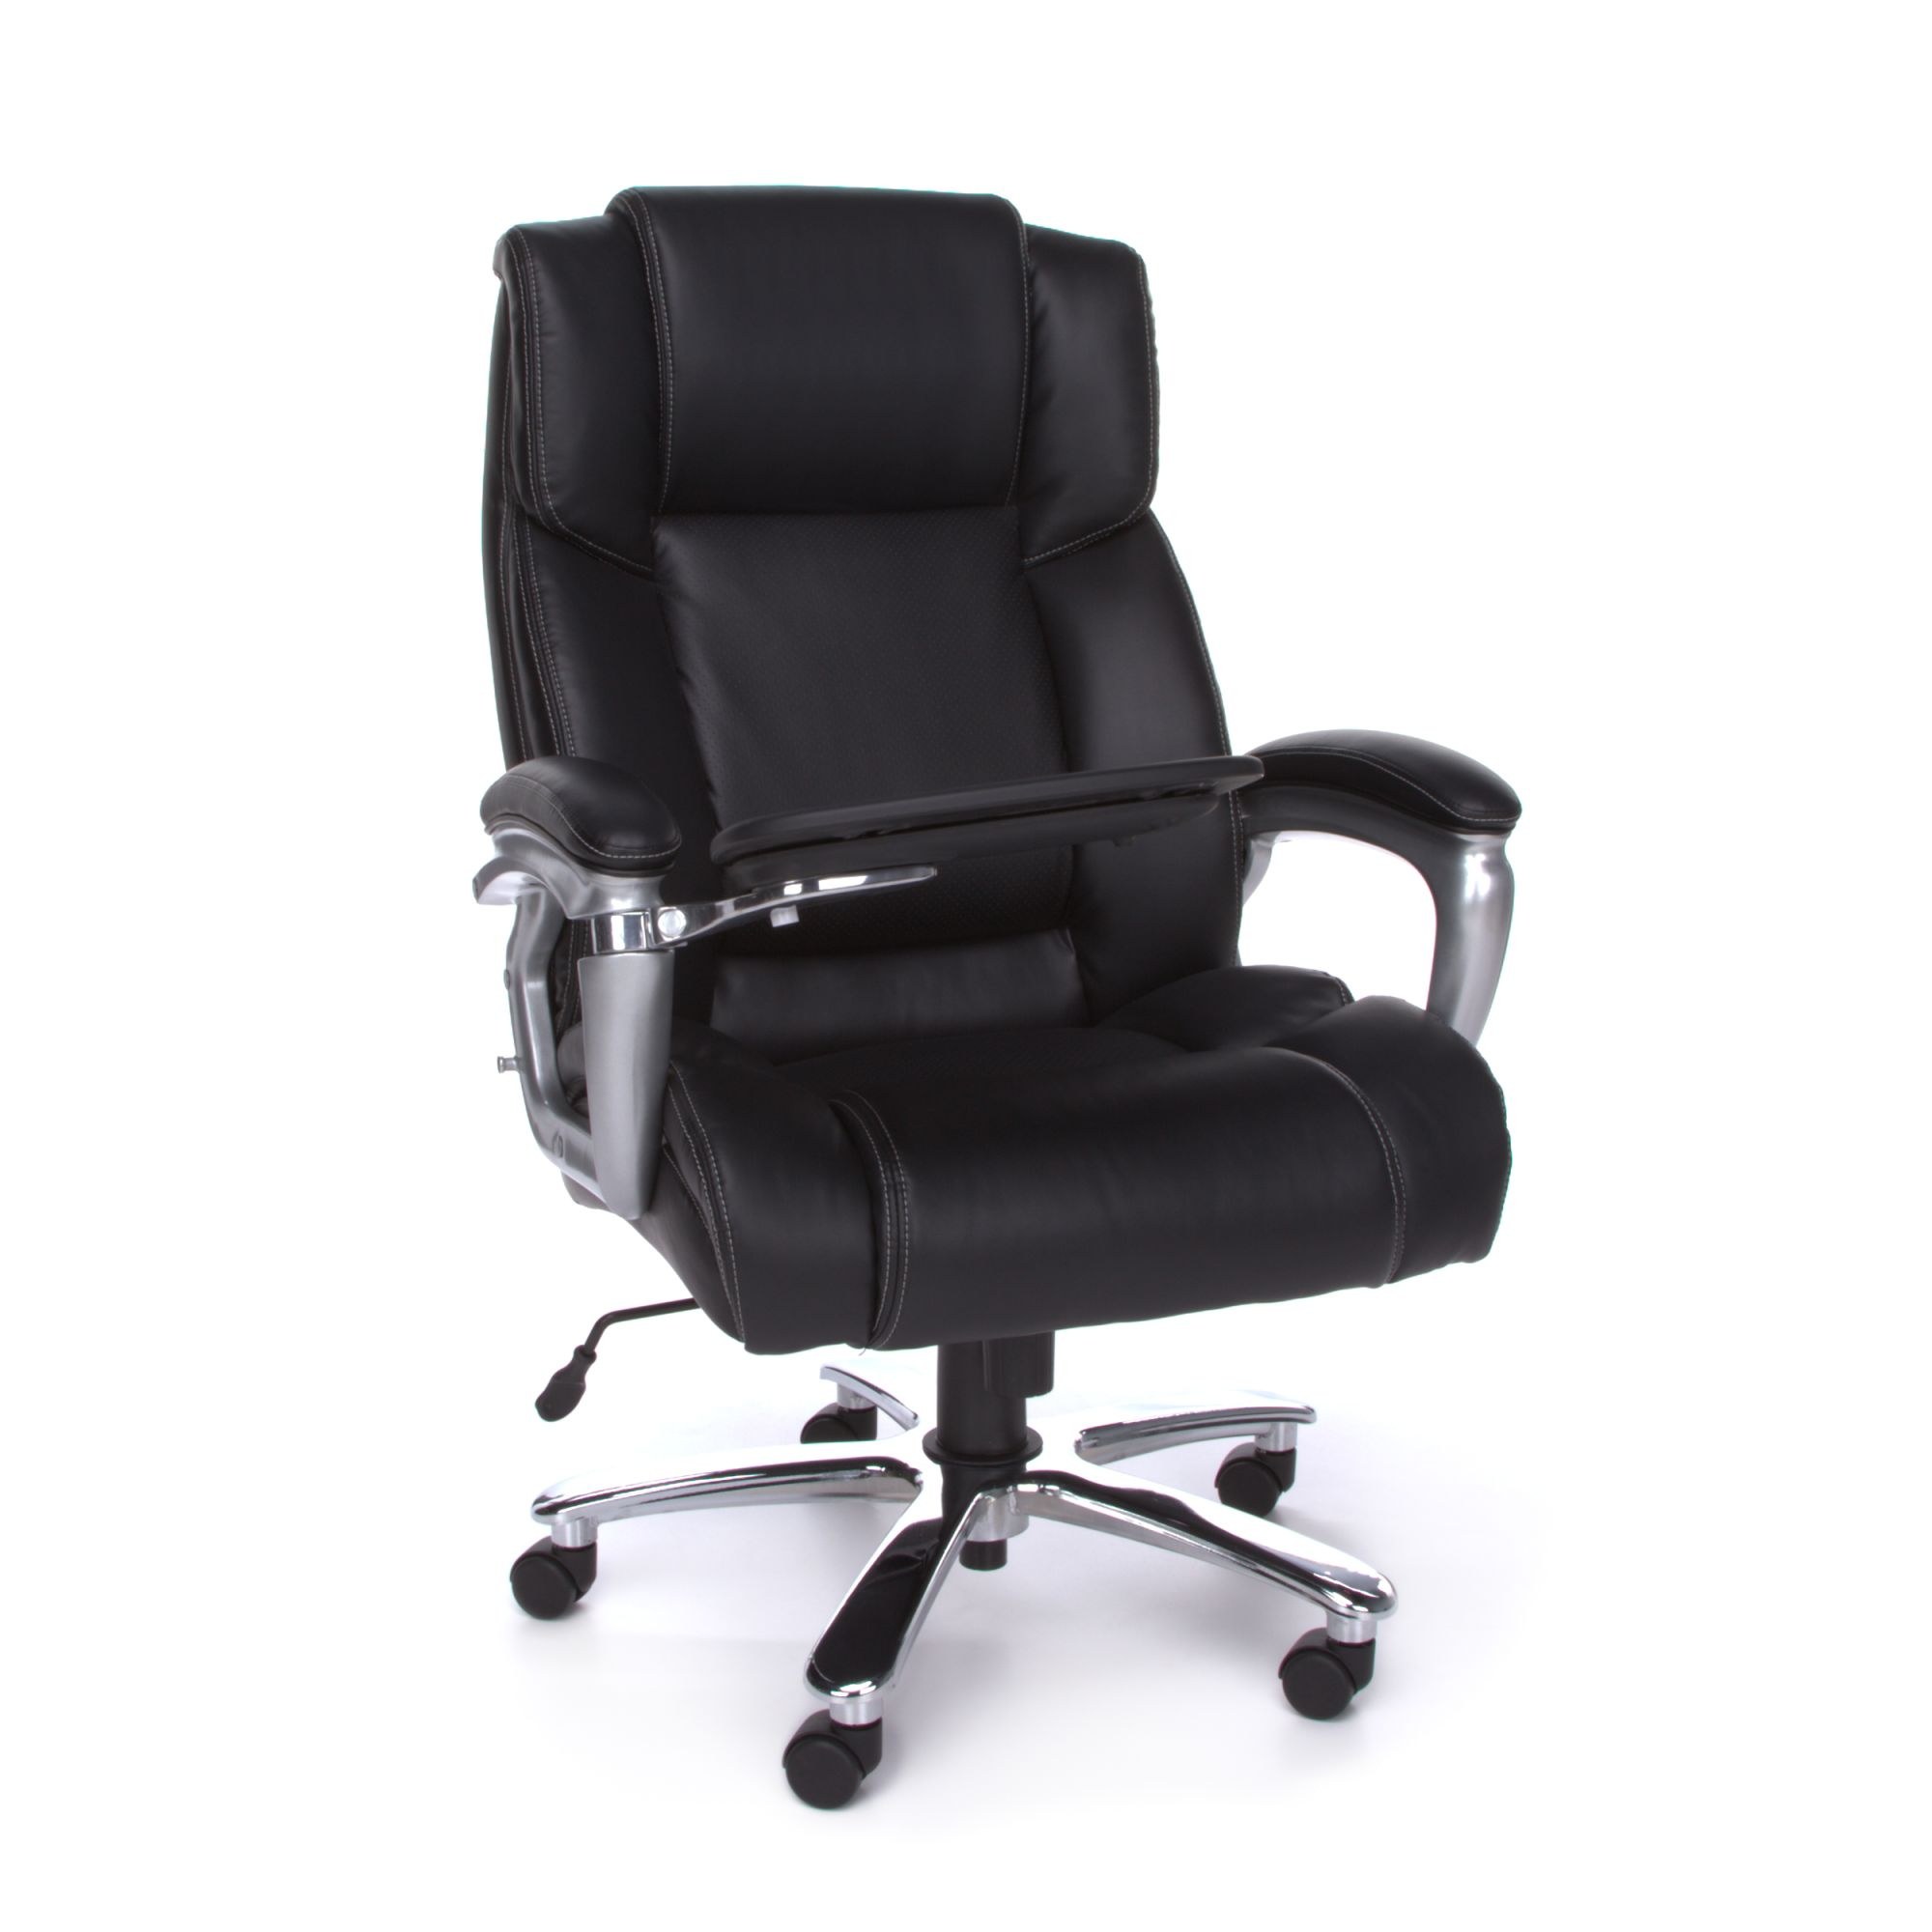 OFM Oro Series Model ORO200 Big & Tall Ergonomic Leather Executive Conference Room Chair with Tablet, Black